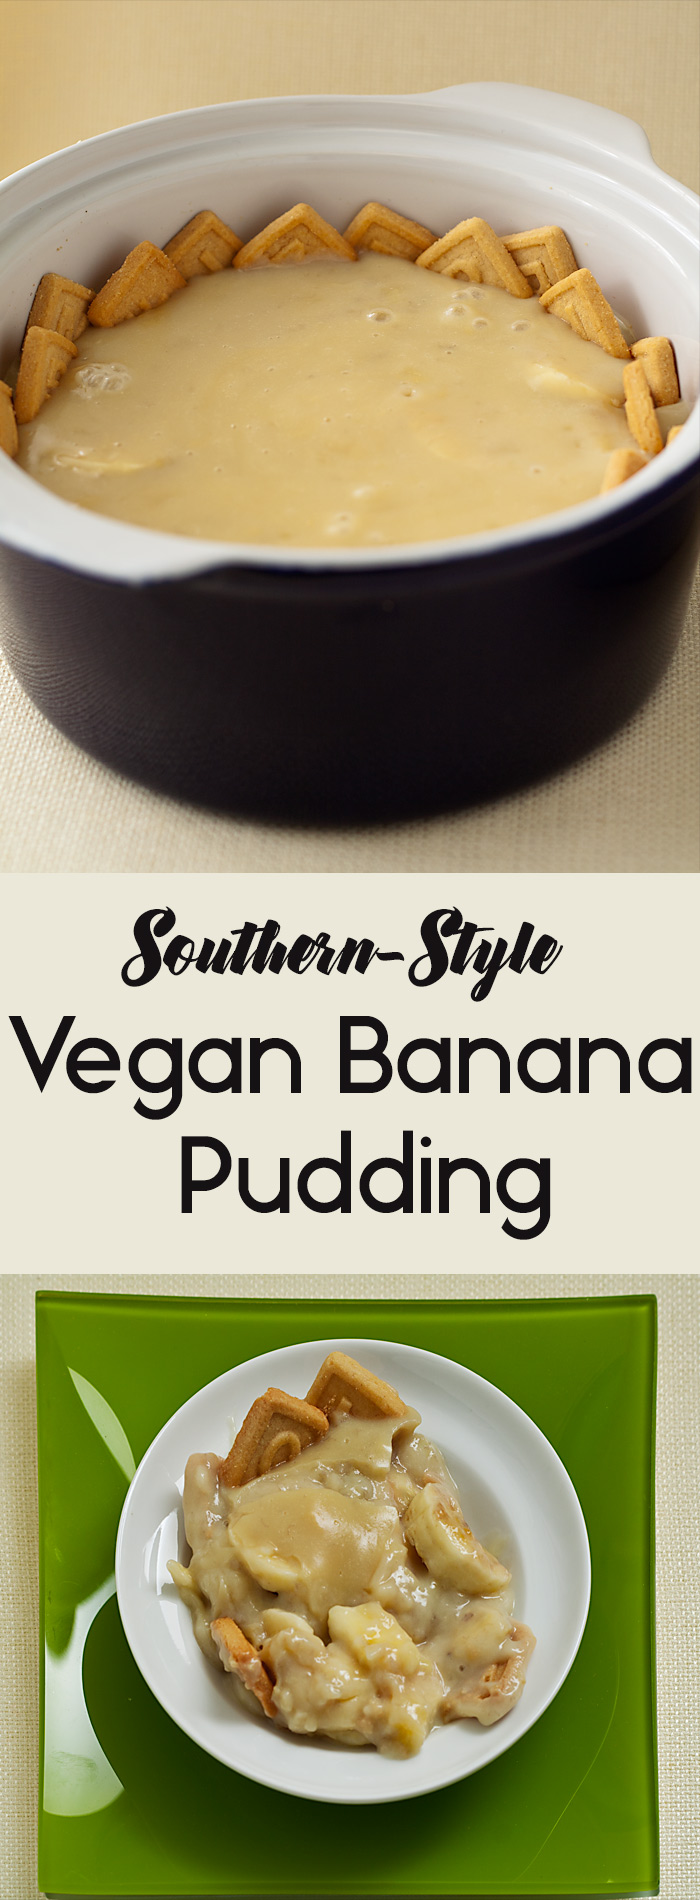 This vegan banana pudding is made the Southern way, with a crust of vanilla cookies. Make it with sugar, stevia, or your choice of low-calorie sweetener.